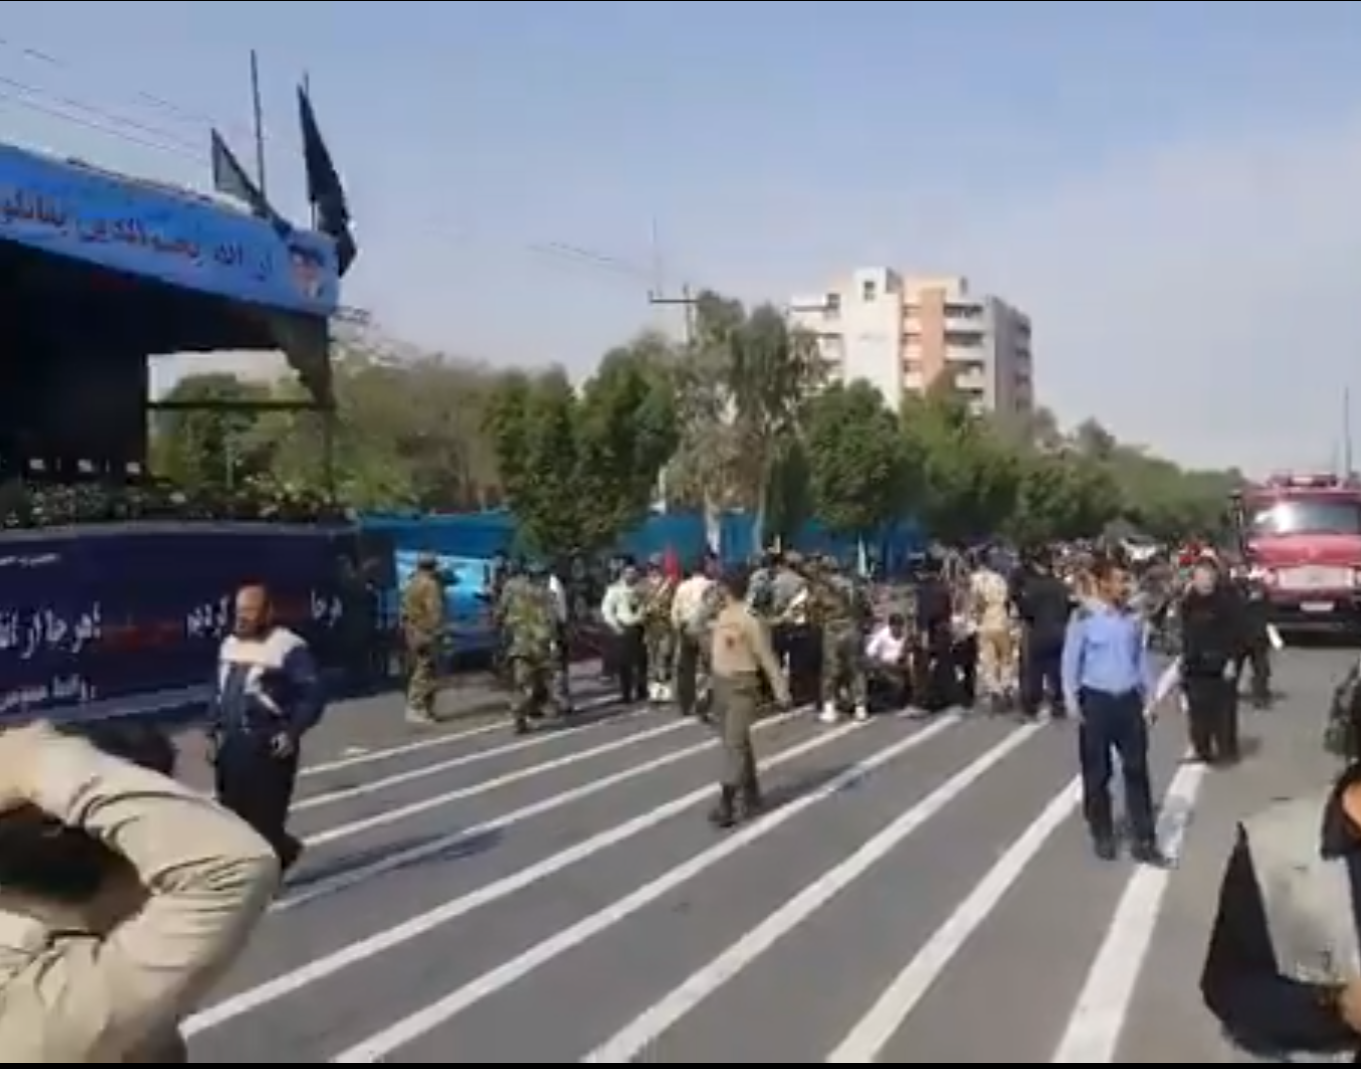 At least 24 killed and 53 hurt in attack on Iranian parade